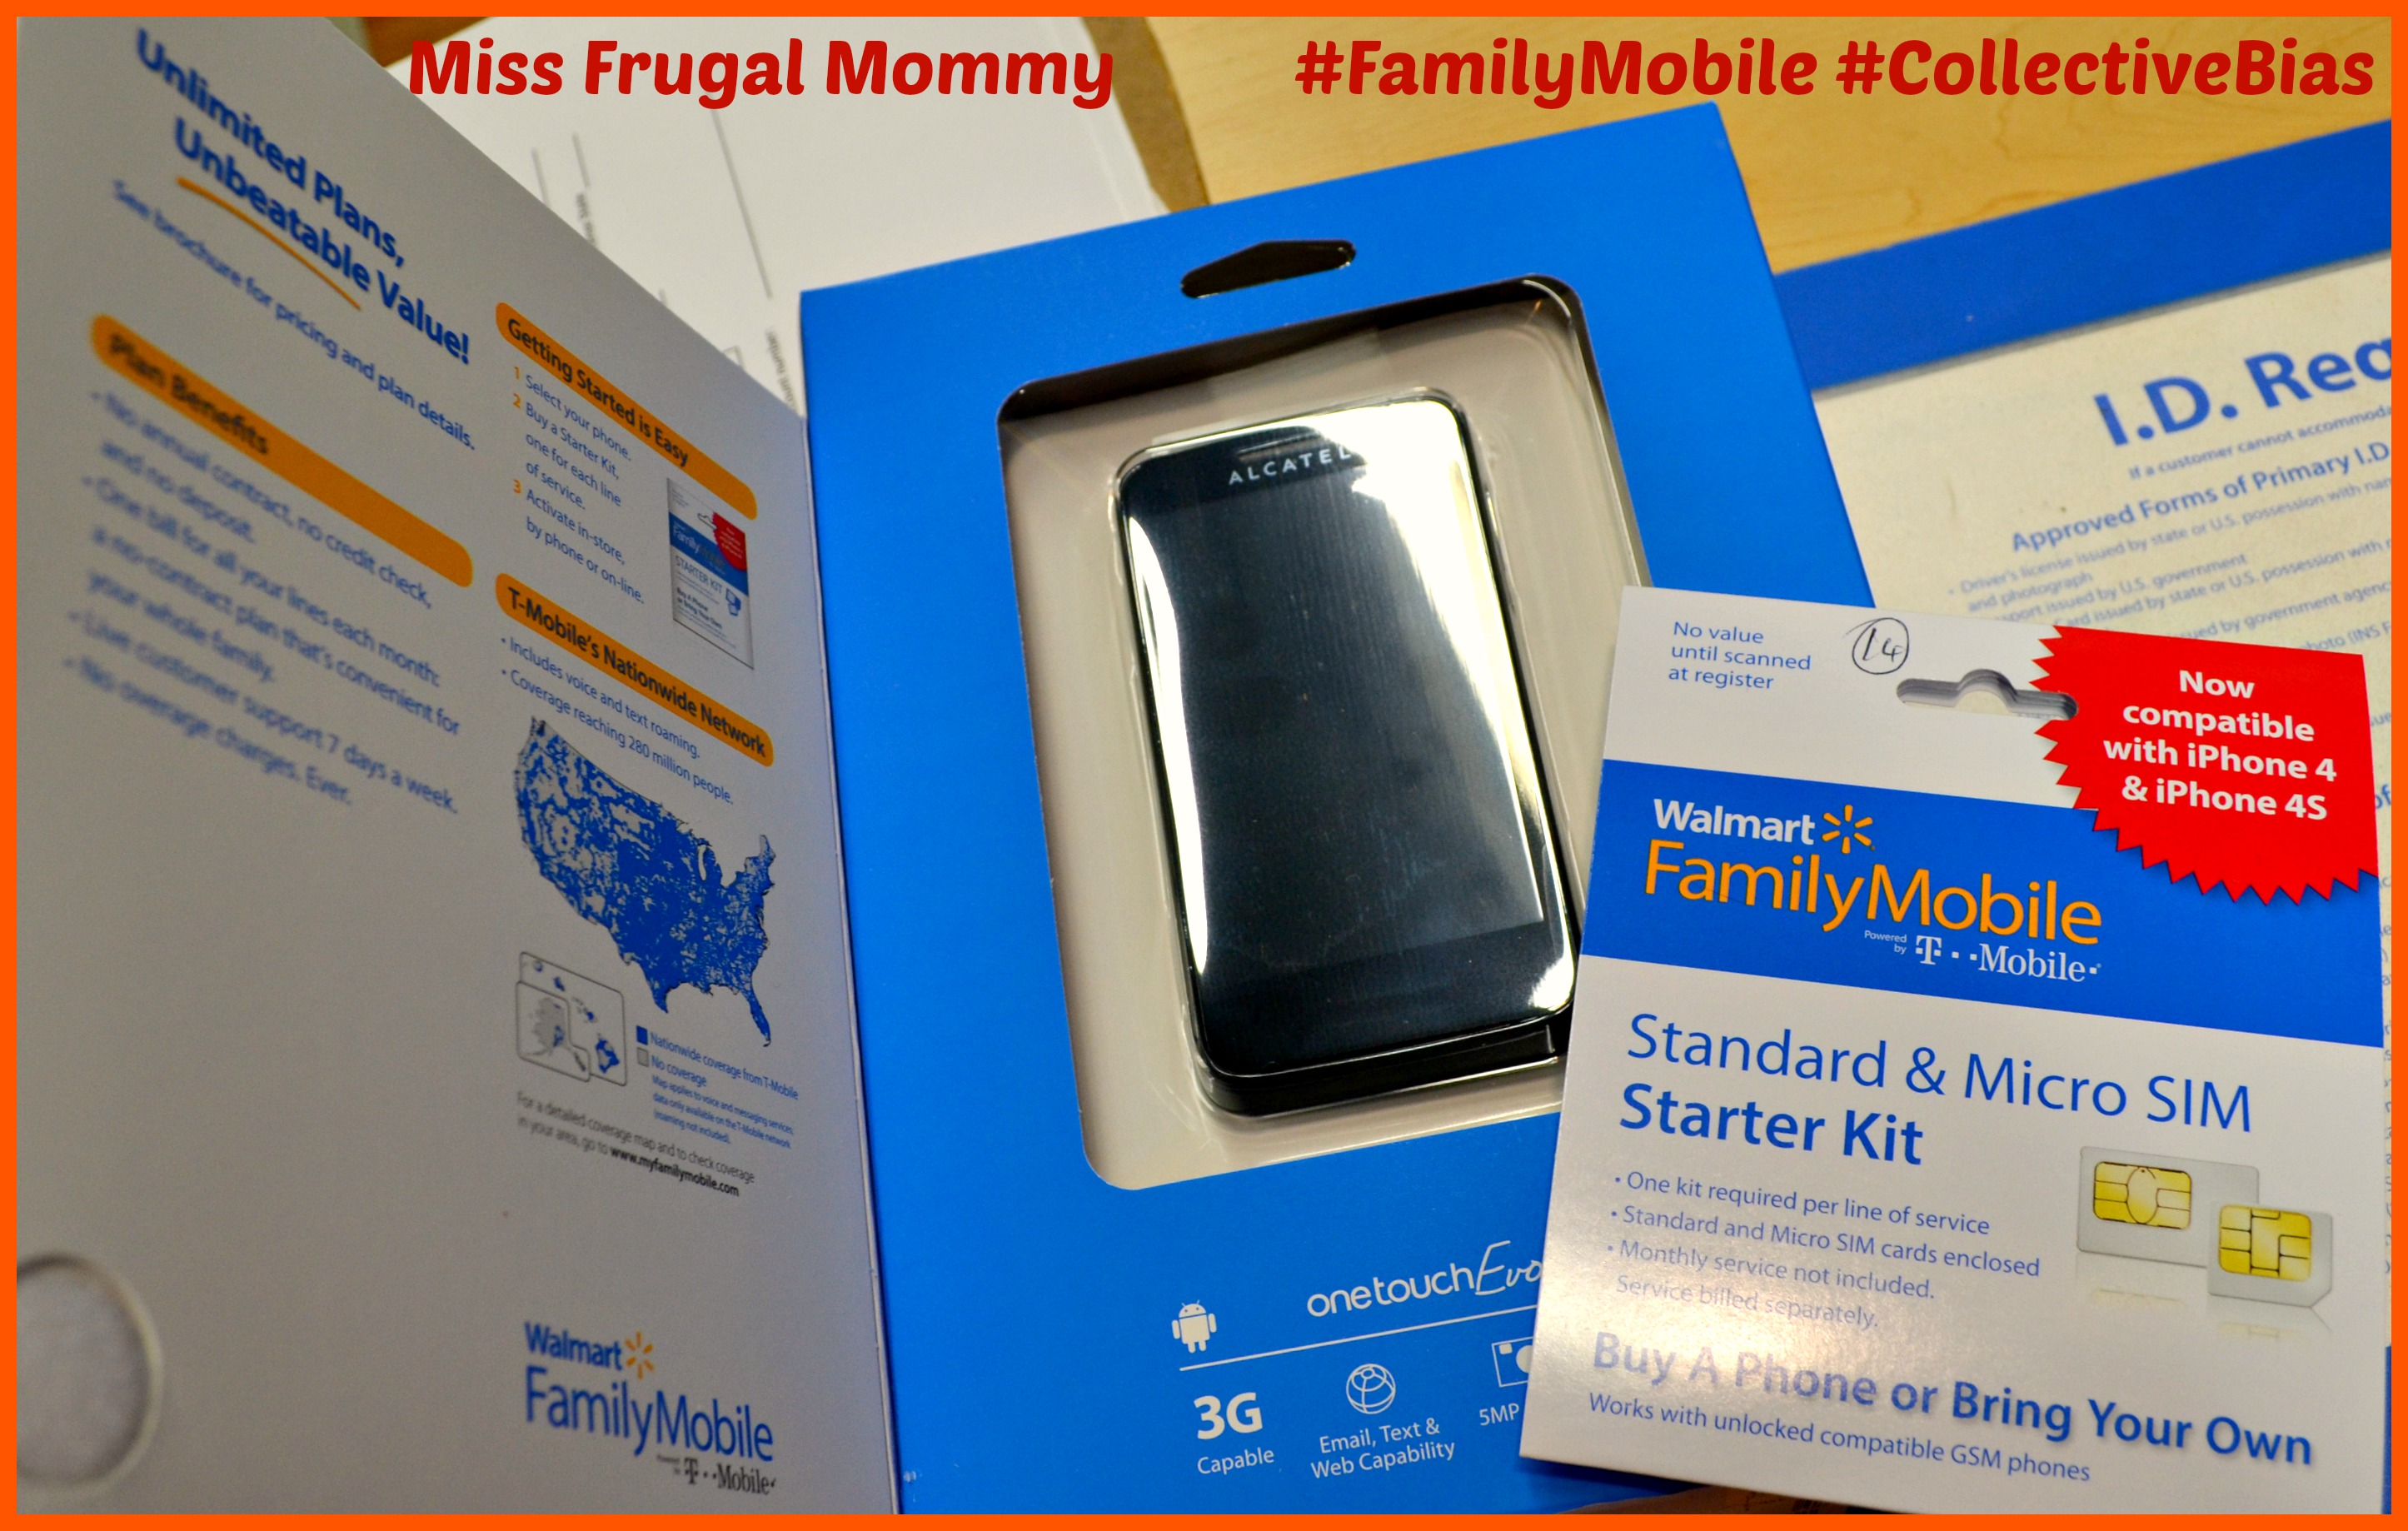 Give Mom the Gift of Connection This Mother's Day #FamilyMobile #CollectiveBias